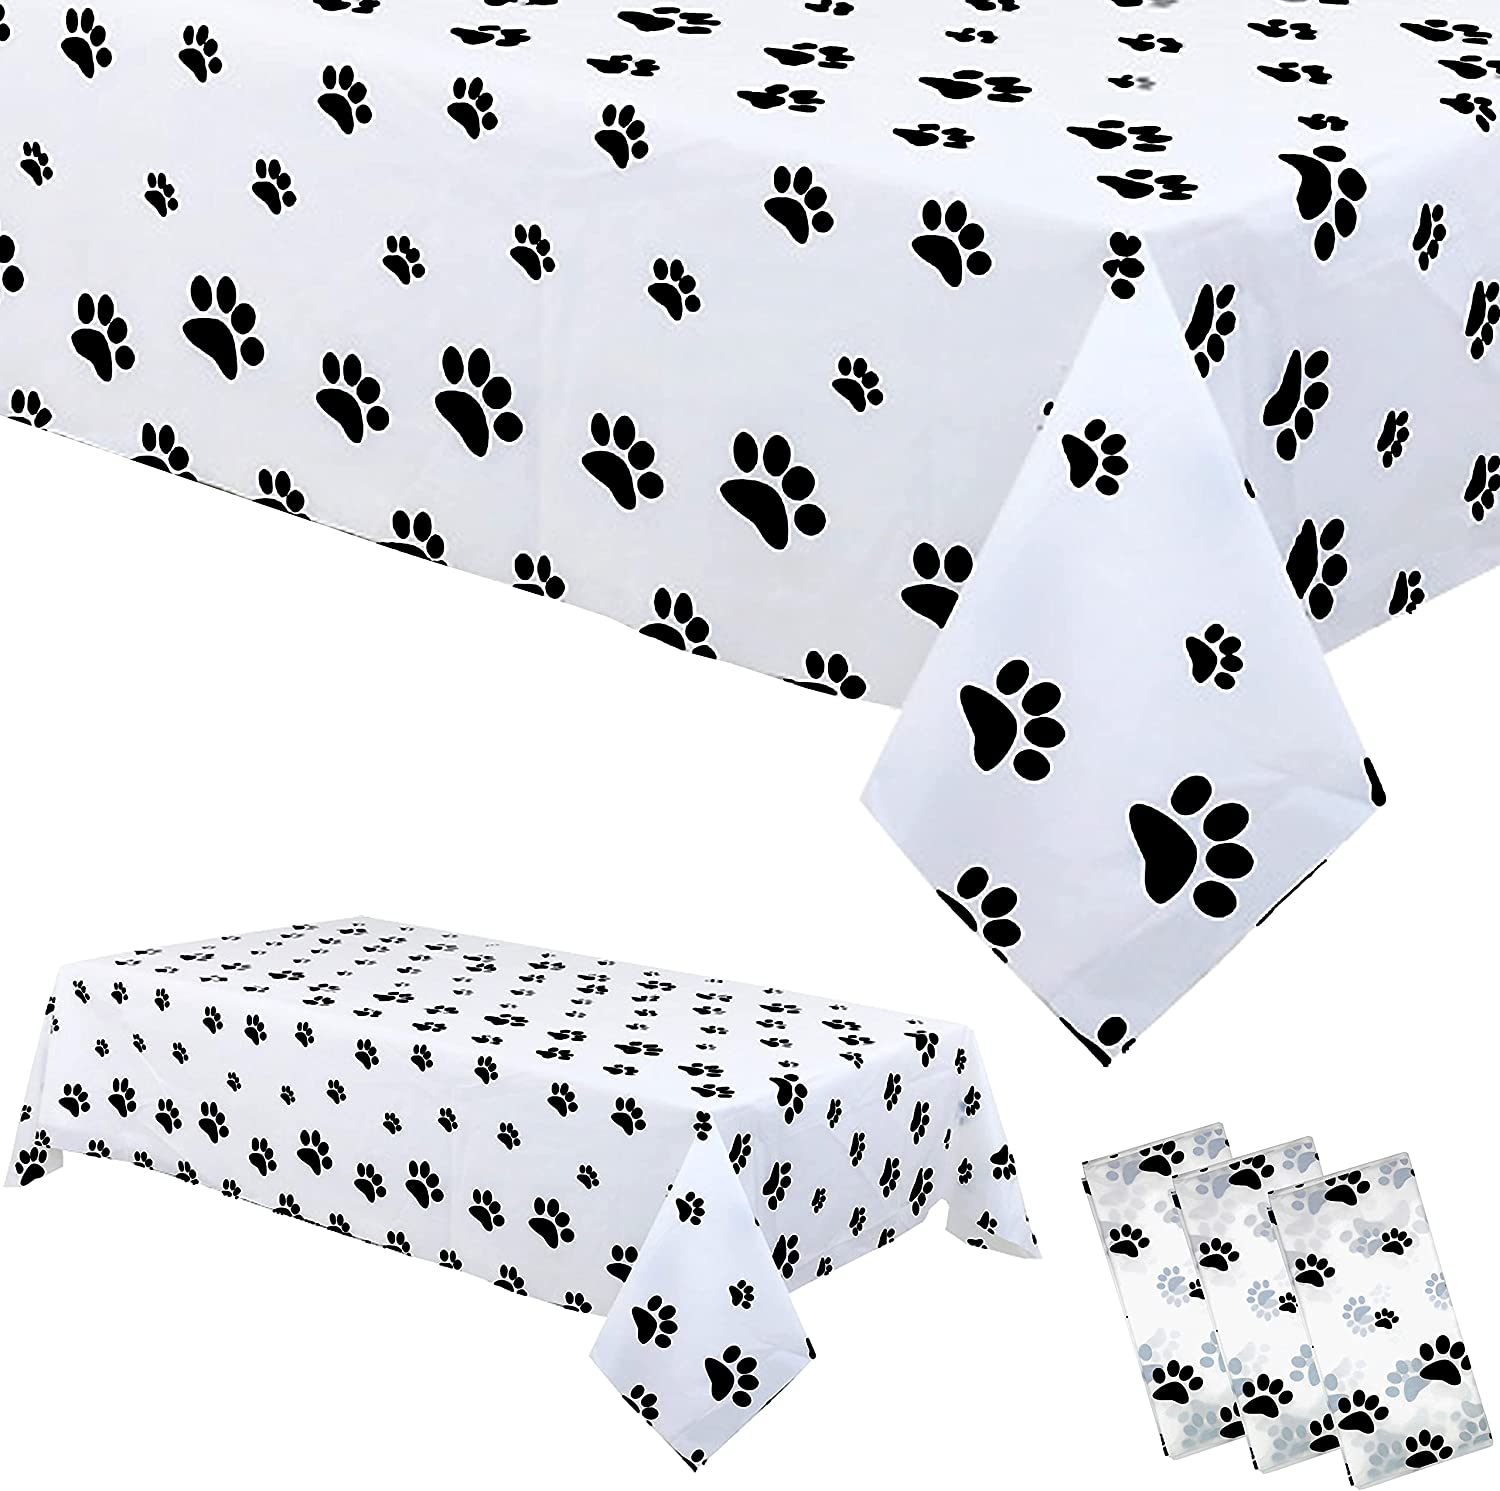 3 Pack Plastic Puppy Paw Print Tablecloth Large Size Disposable Rectangular Table Covers for Dog Themed Birthday Party Supplies Dog Lover Dining Room Kitchen Decor